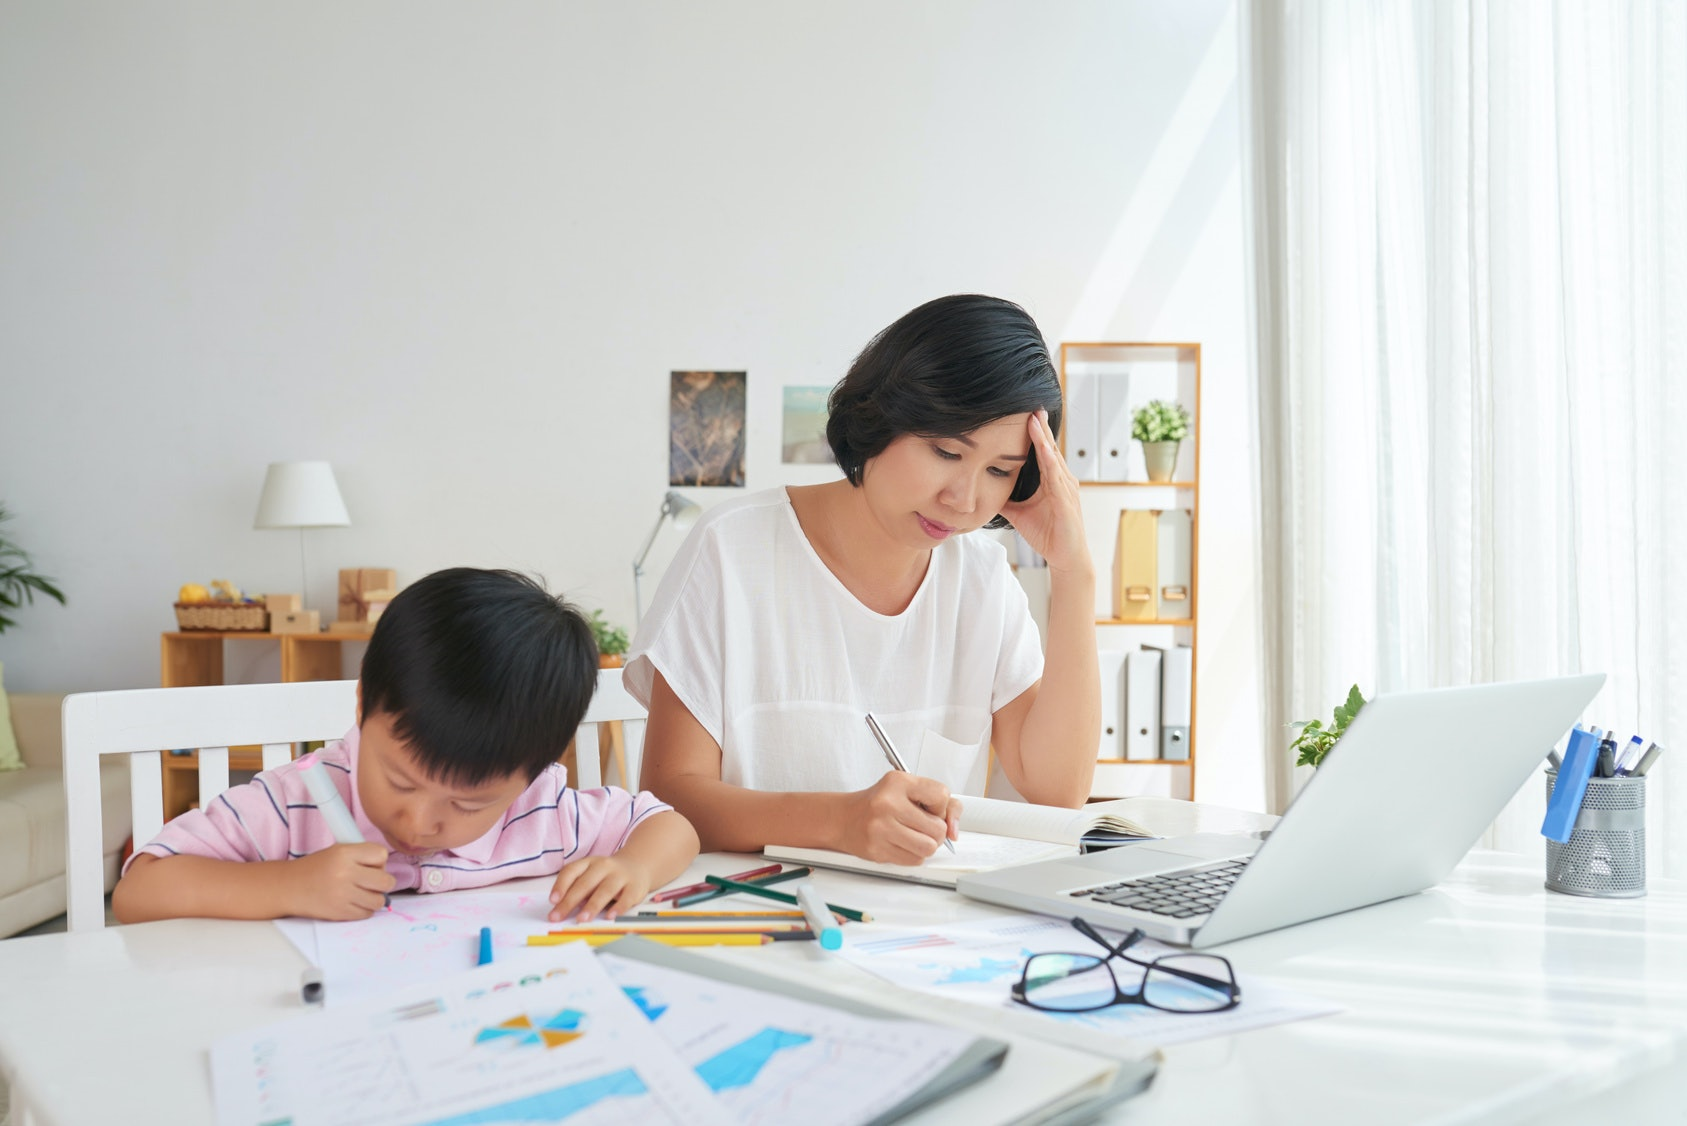 81e08a146 4 Facts About Moms' Equal Pay Day That Will Make You Angry, Then Spur You  Into Action